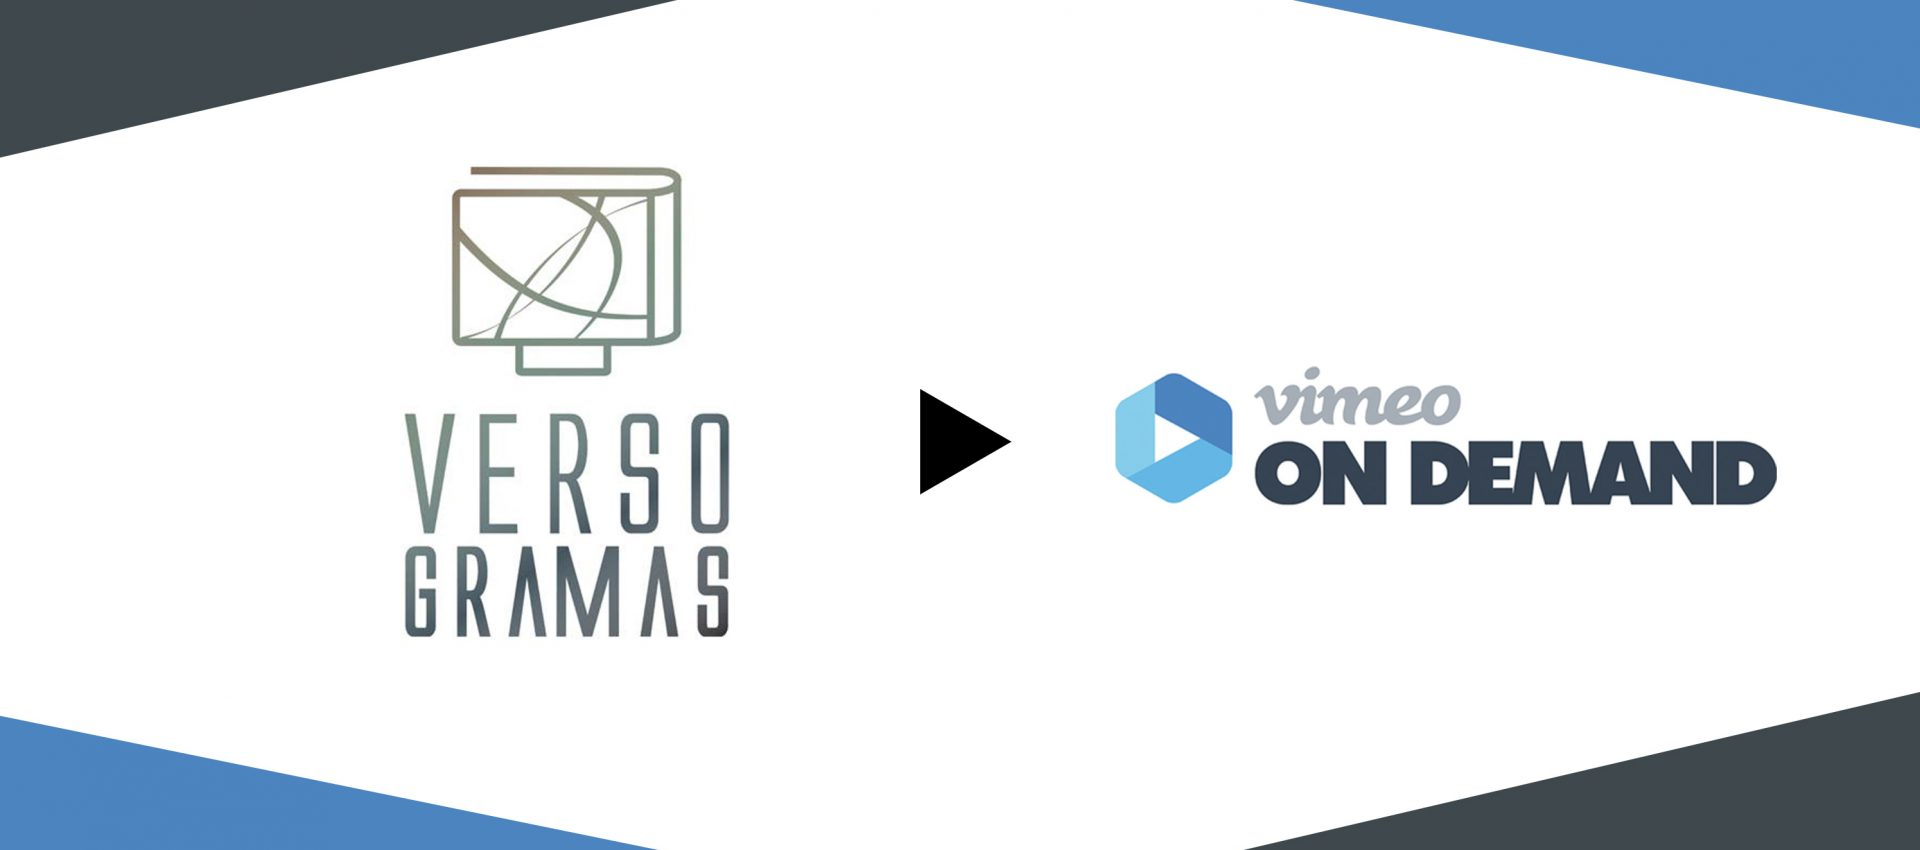 Versogramas, dispoñible en Vimeo On Demand